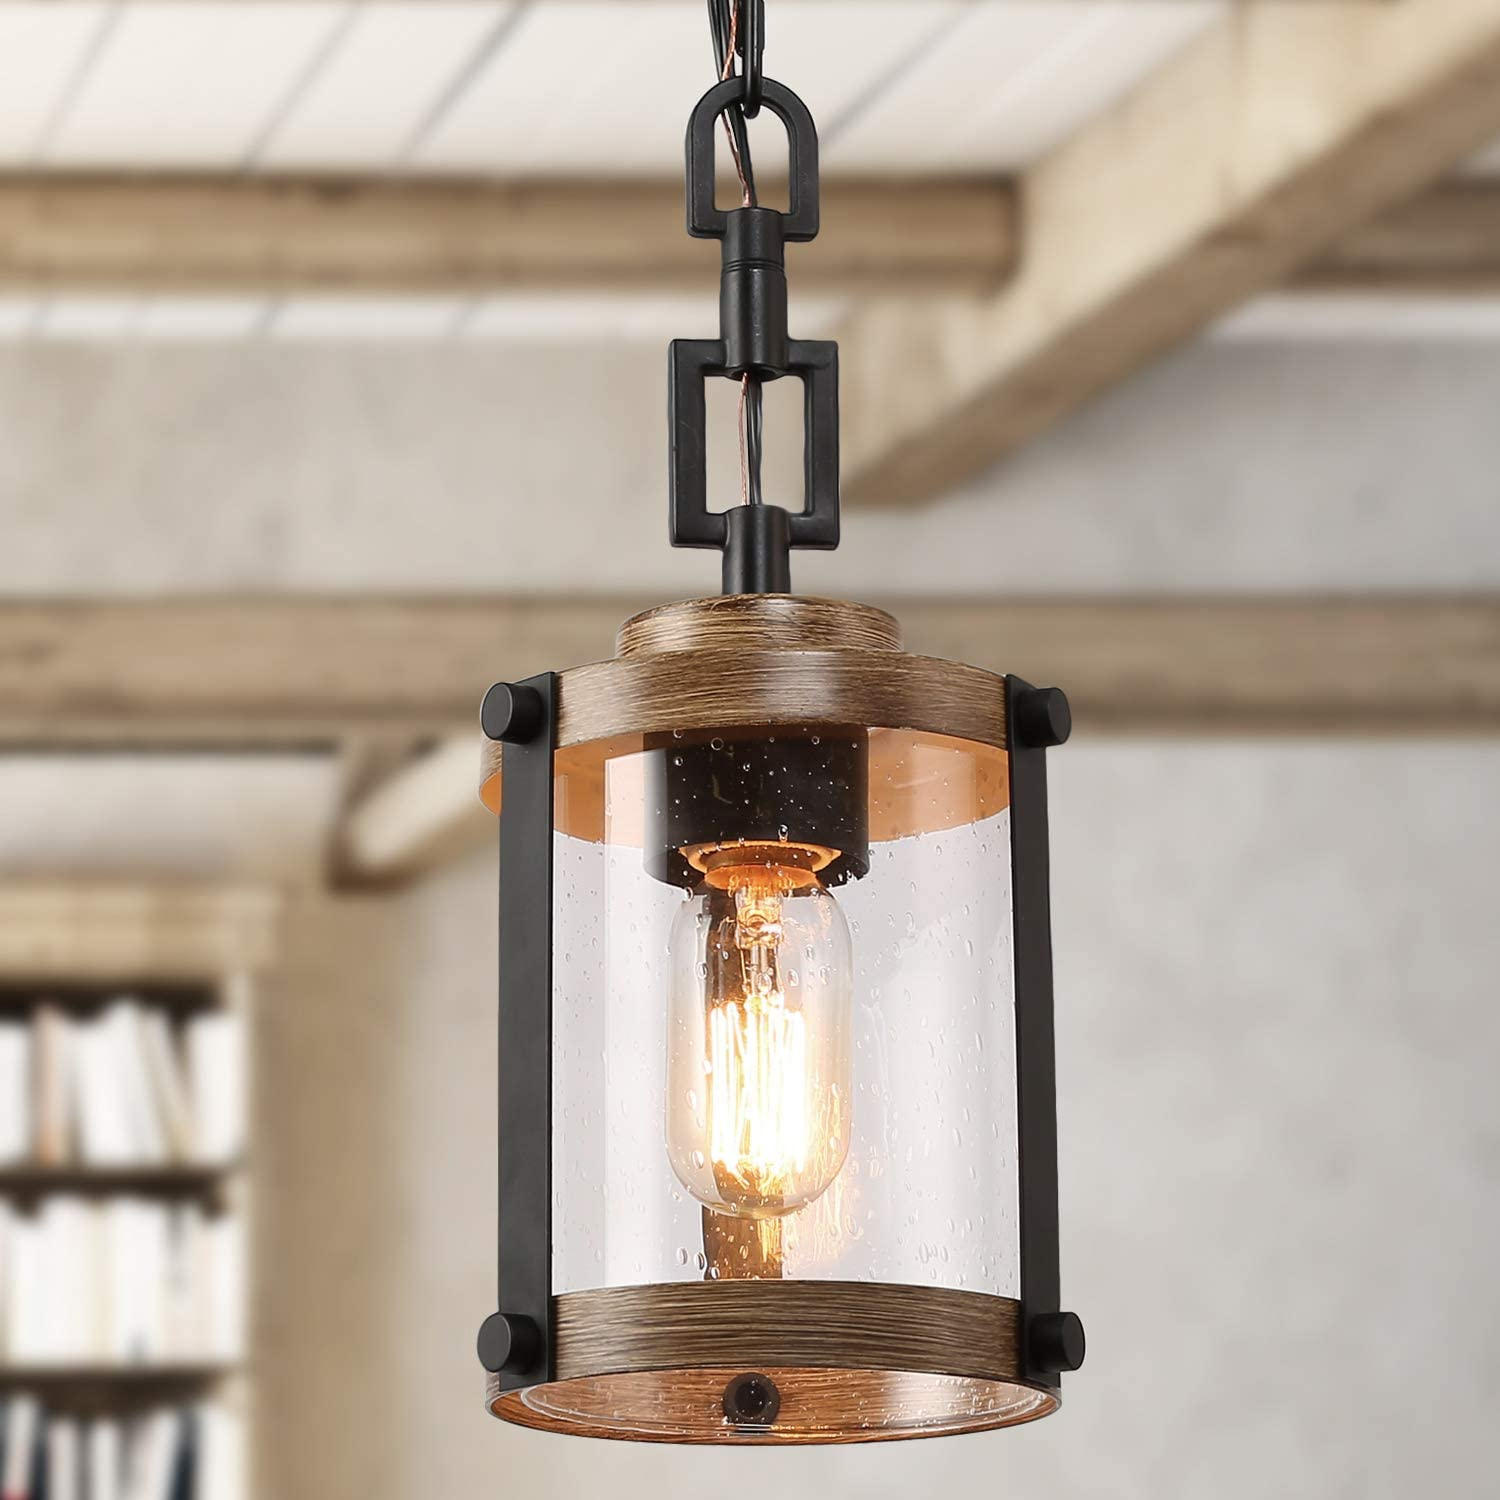 Log Barn Pendant Lighting For Kitchen Island Farmhouse Mini Chandelier In Faux Wood Metal With Bubbled Glass Shade Rustic Ceiling Fixture Hanging For Dining Room Hallway Amazon Com